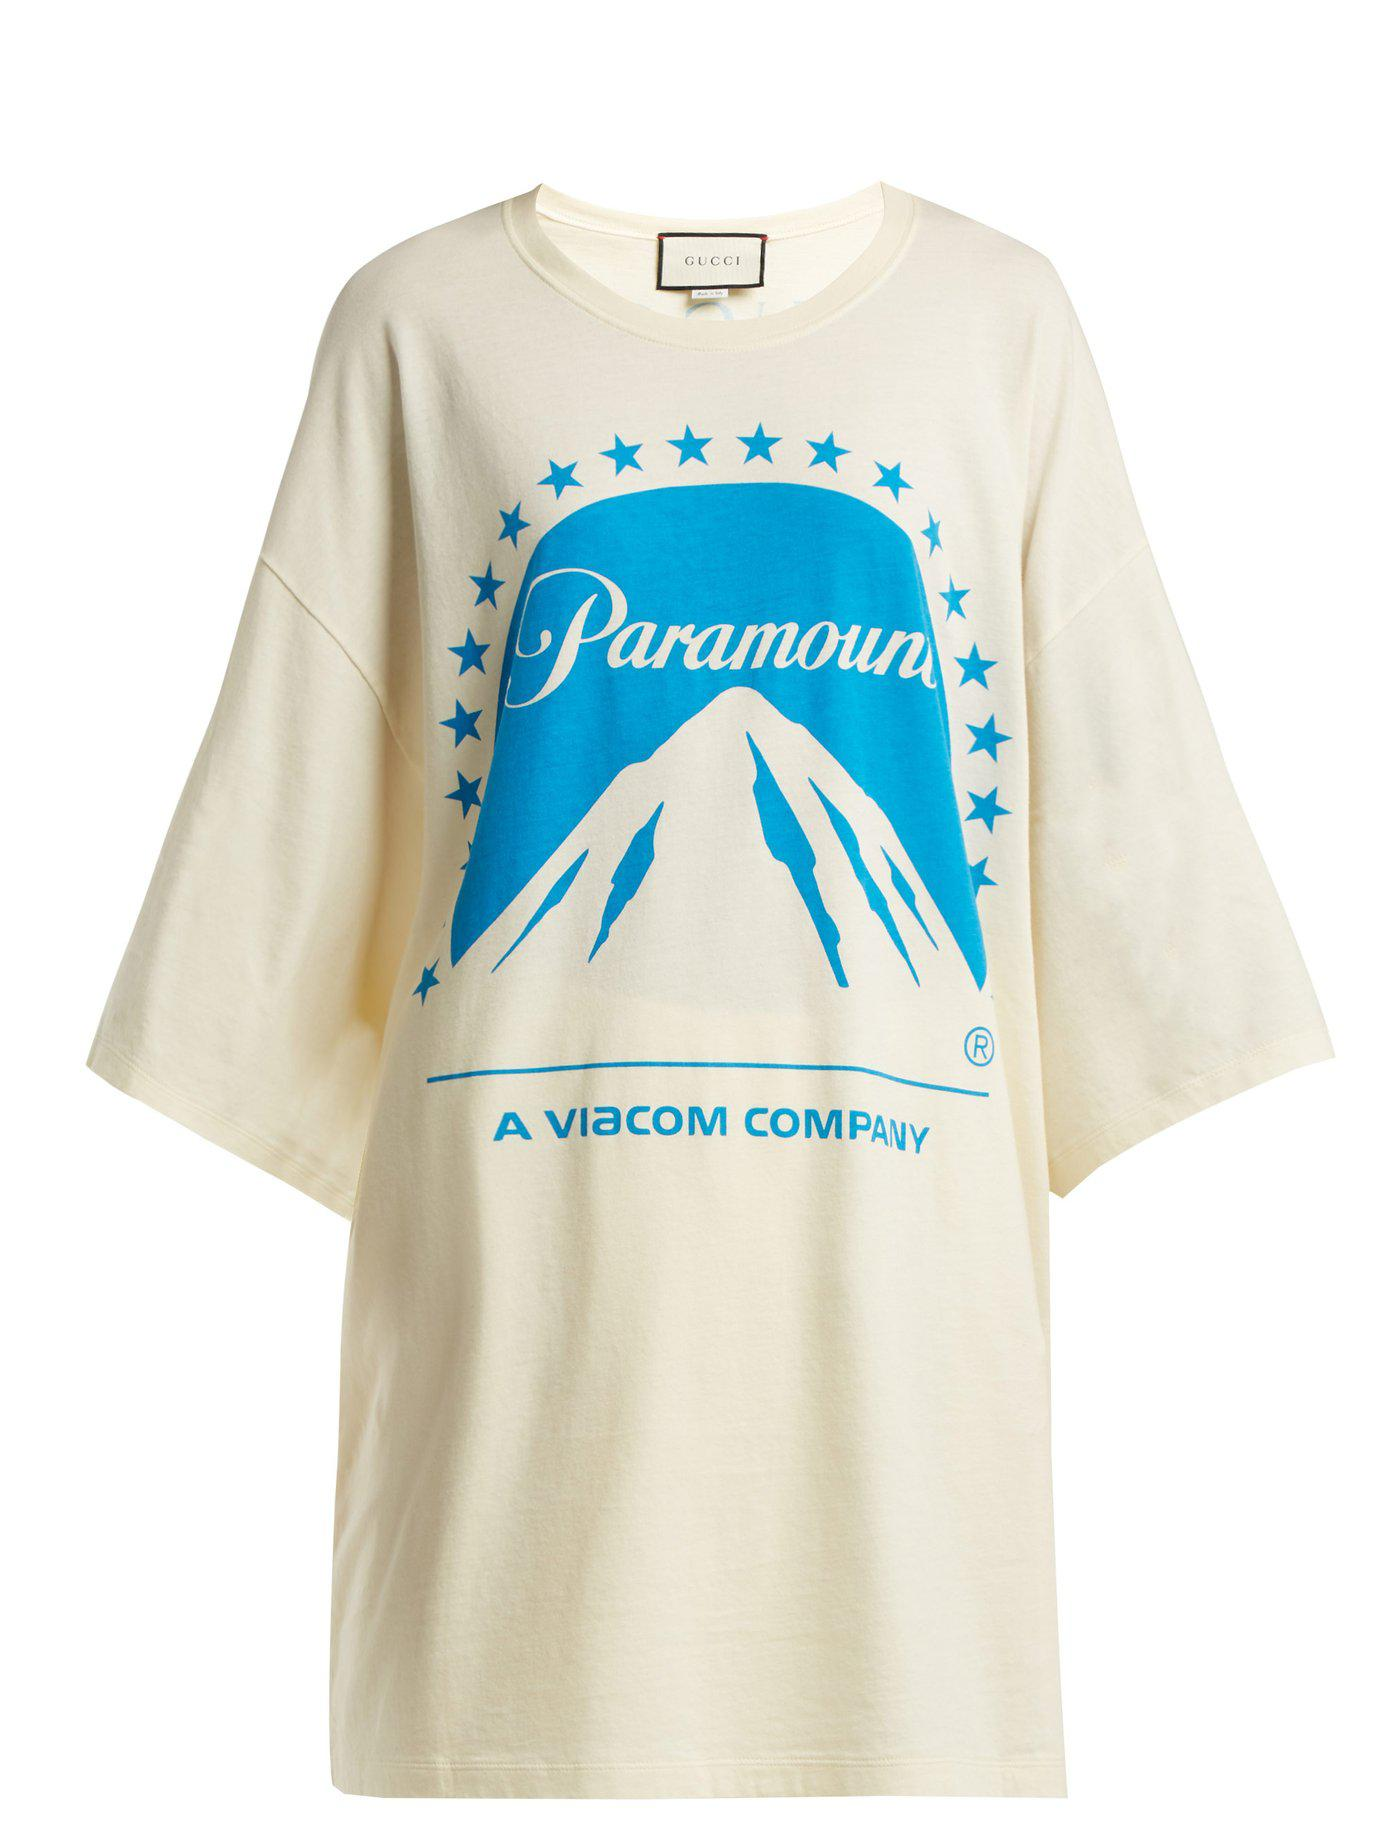 63d3f8f92 Gucci Paramount Oversized Cotton T Shirt in Blue - Lyst